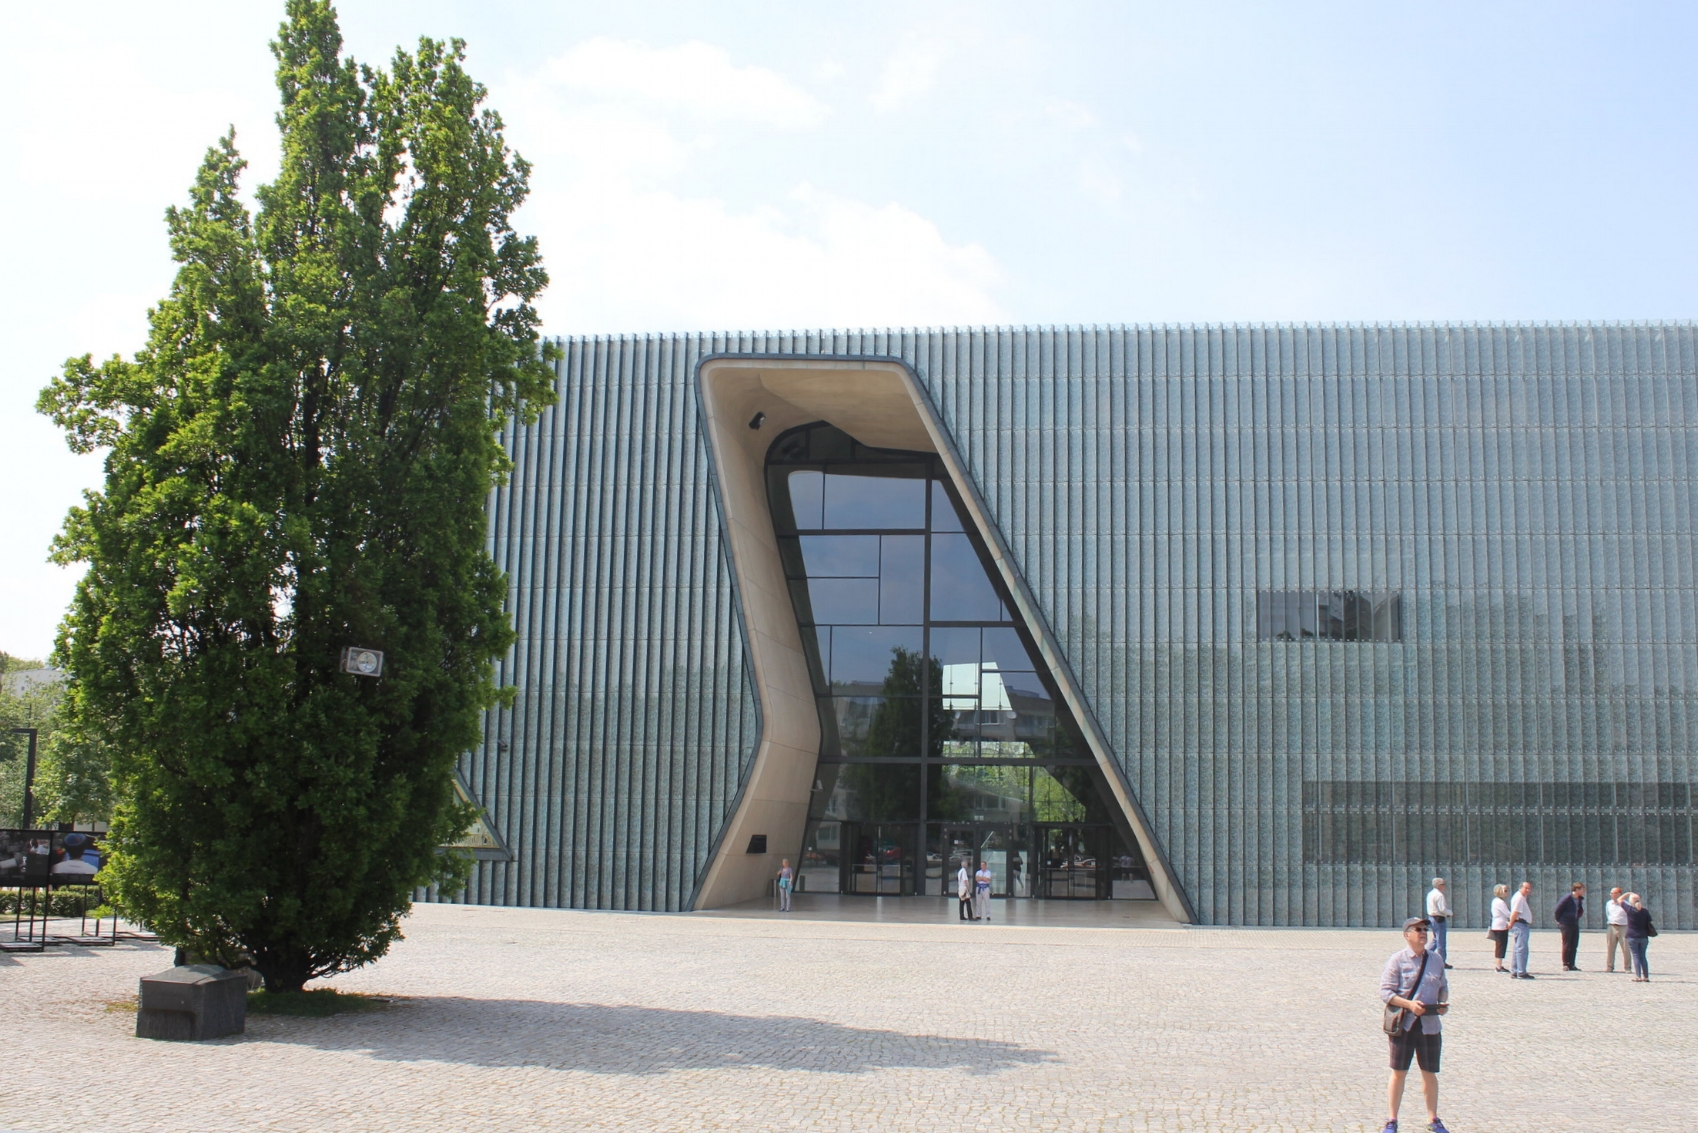 Warsaw – POLIN Museum